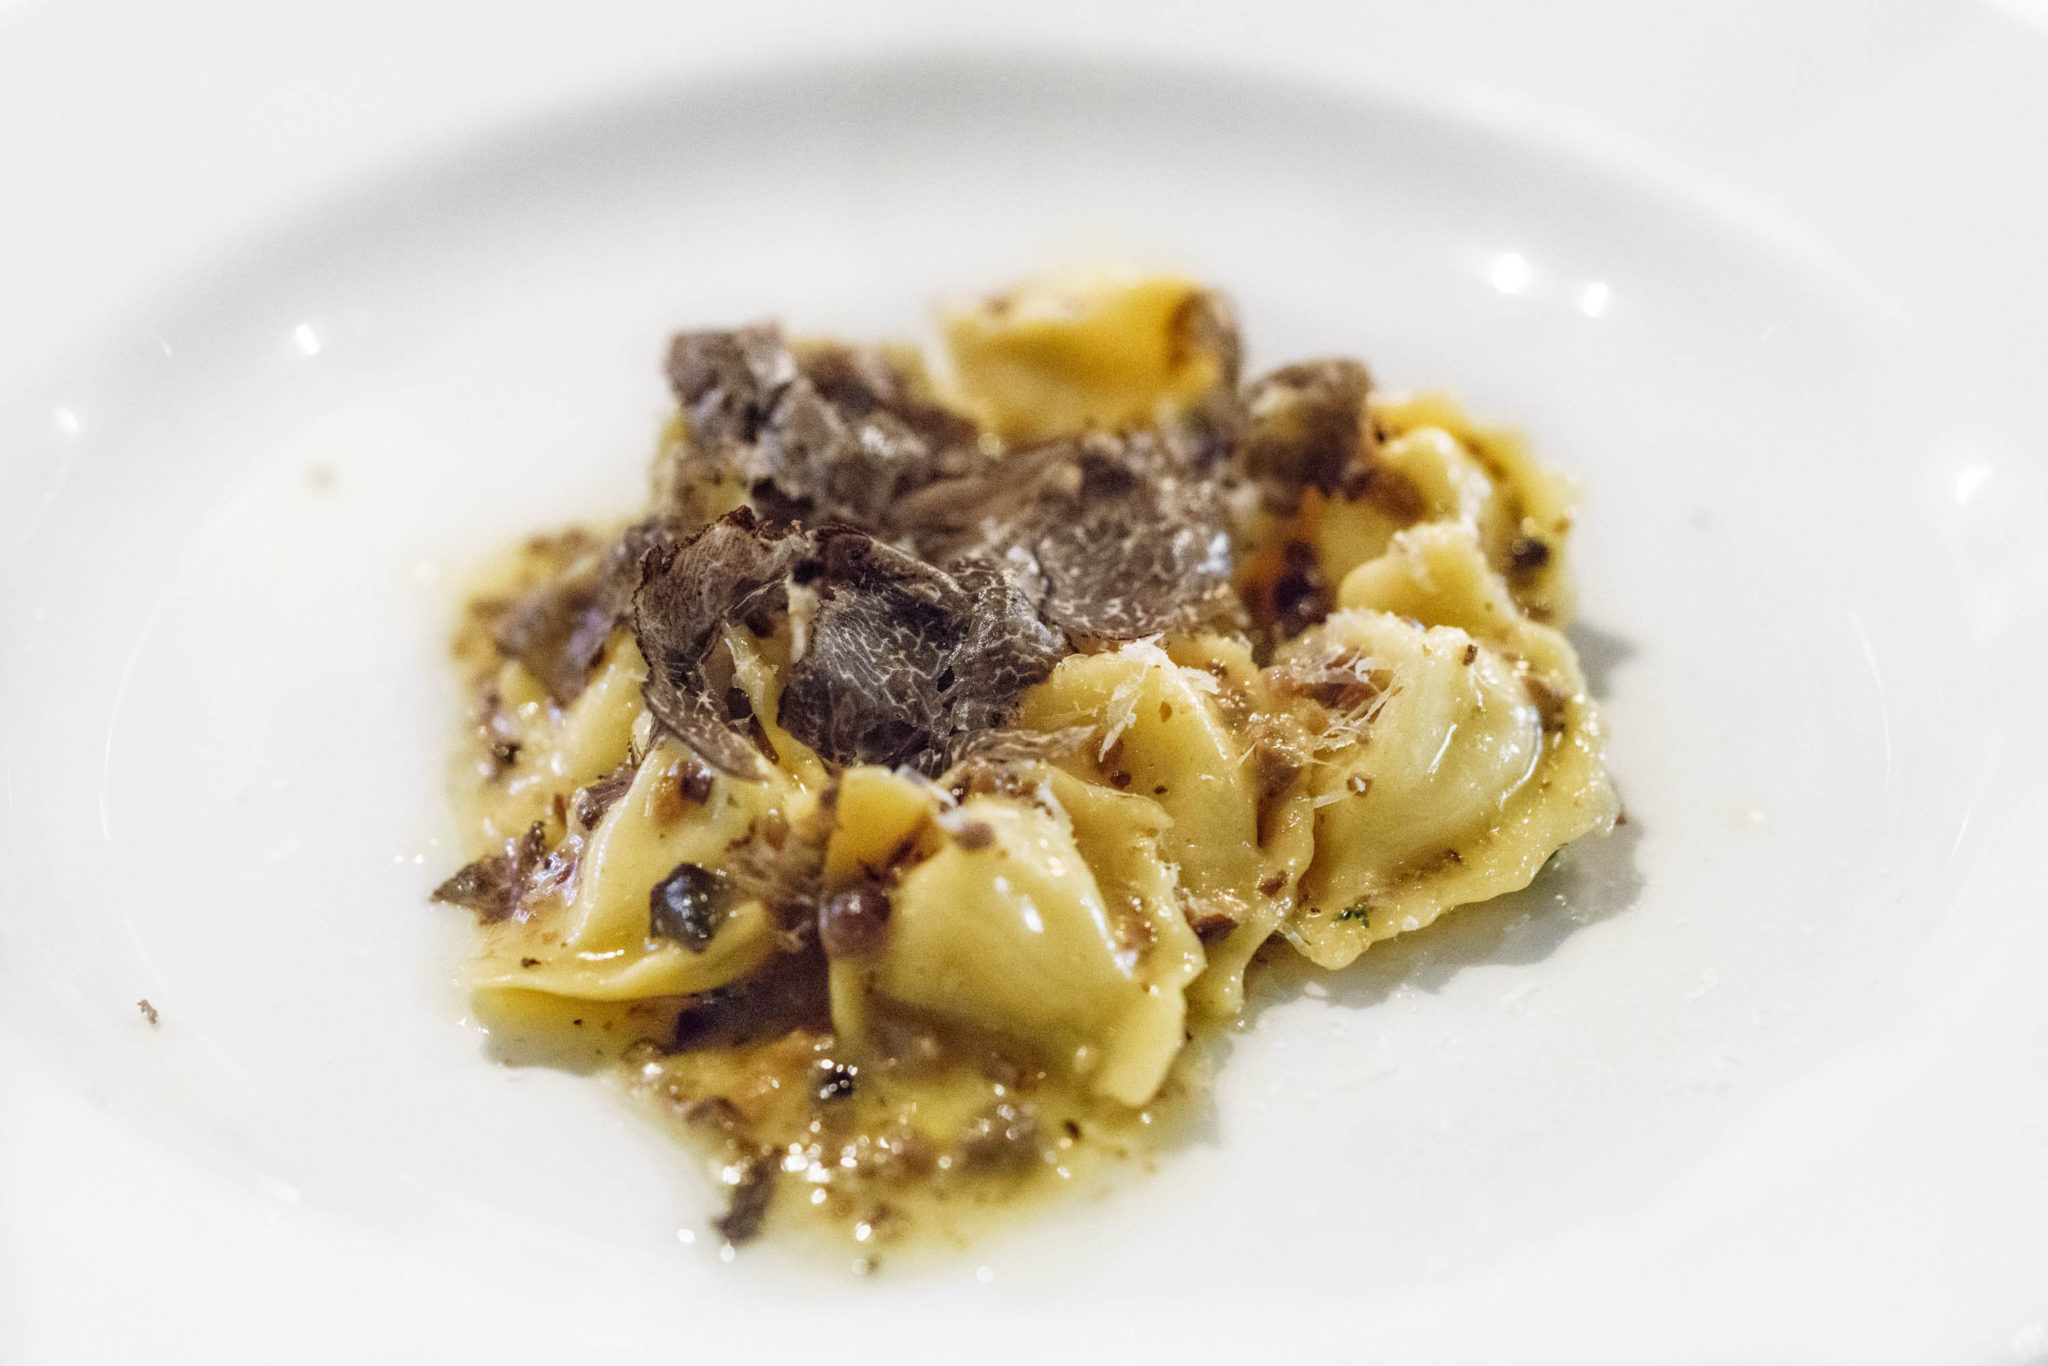 Celery Root Cappellacci with Blue Foot mushrooms ($32)